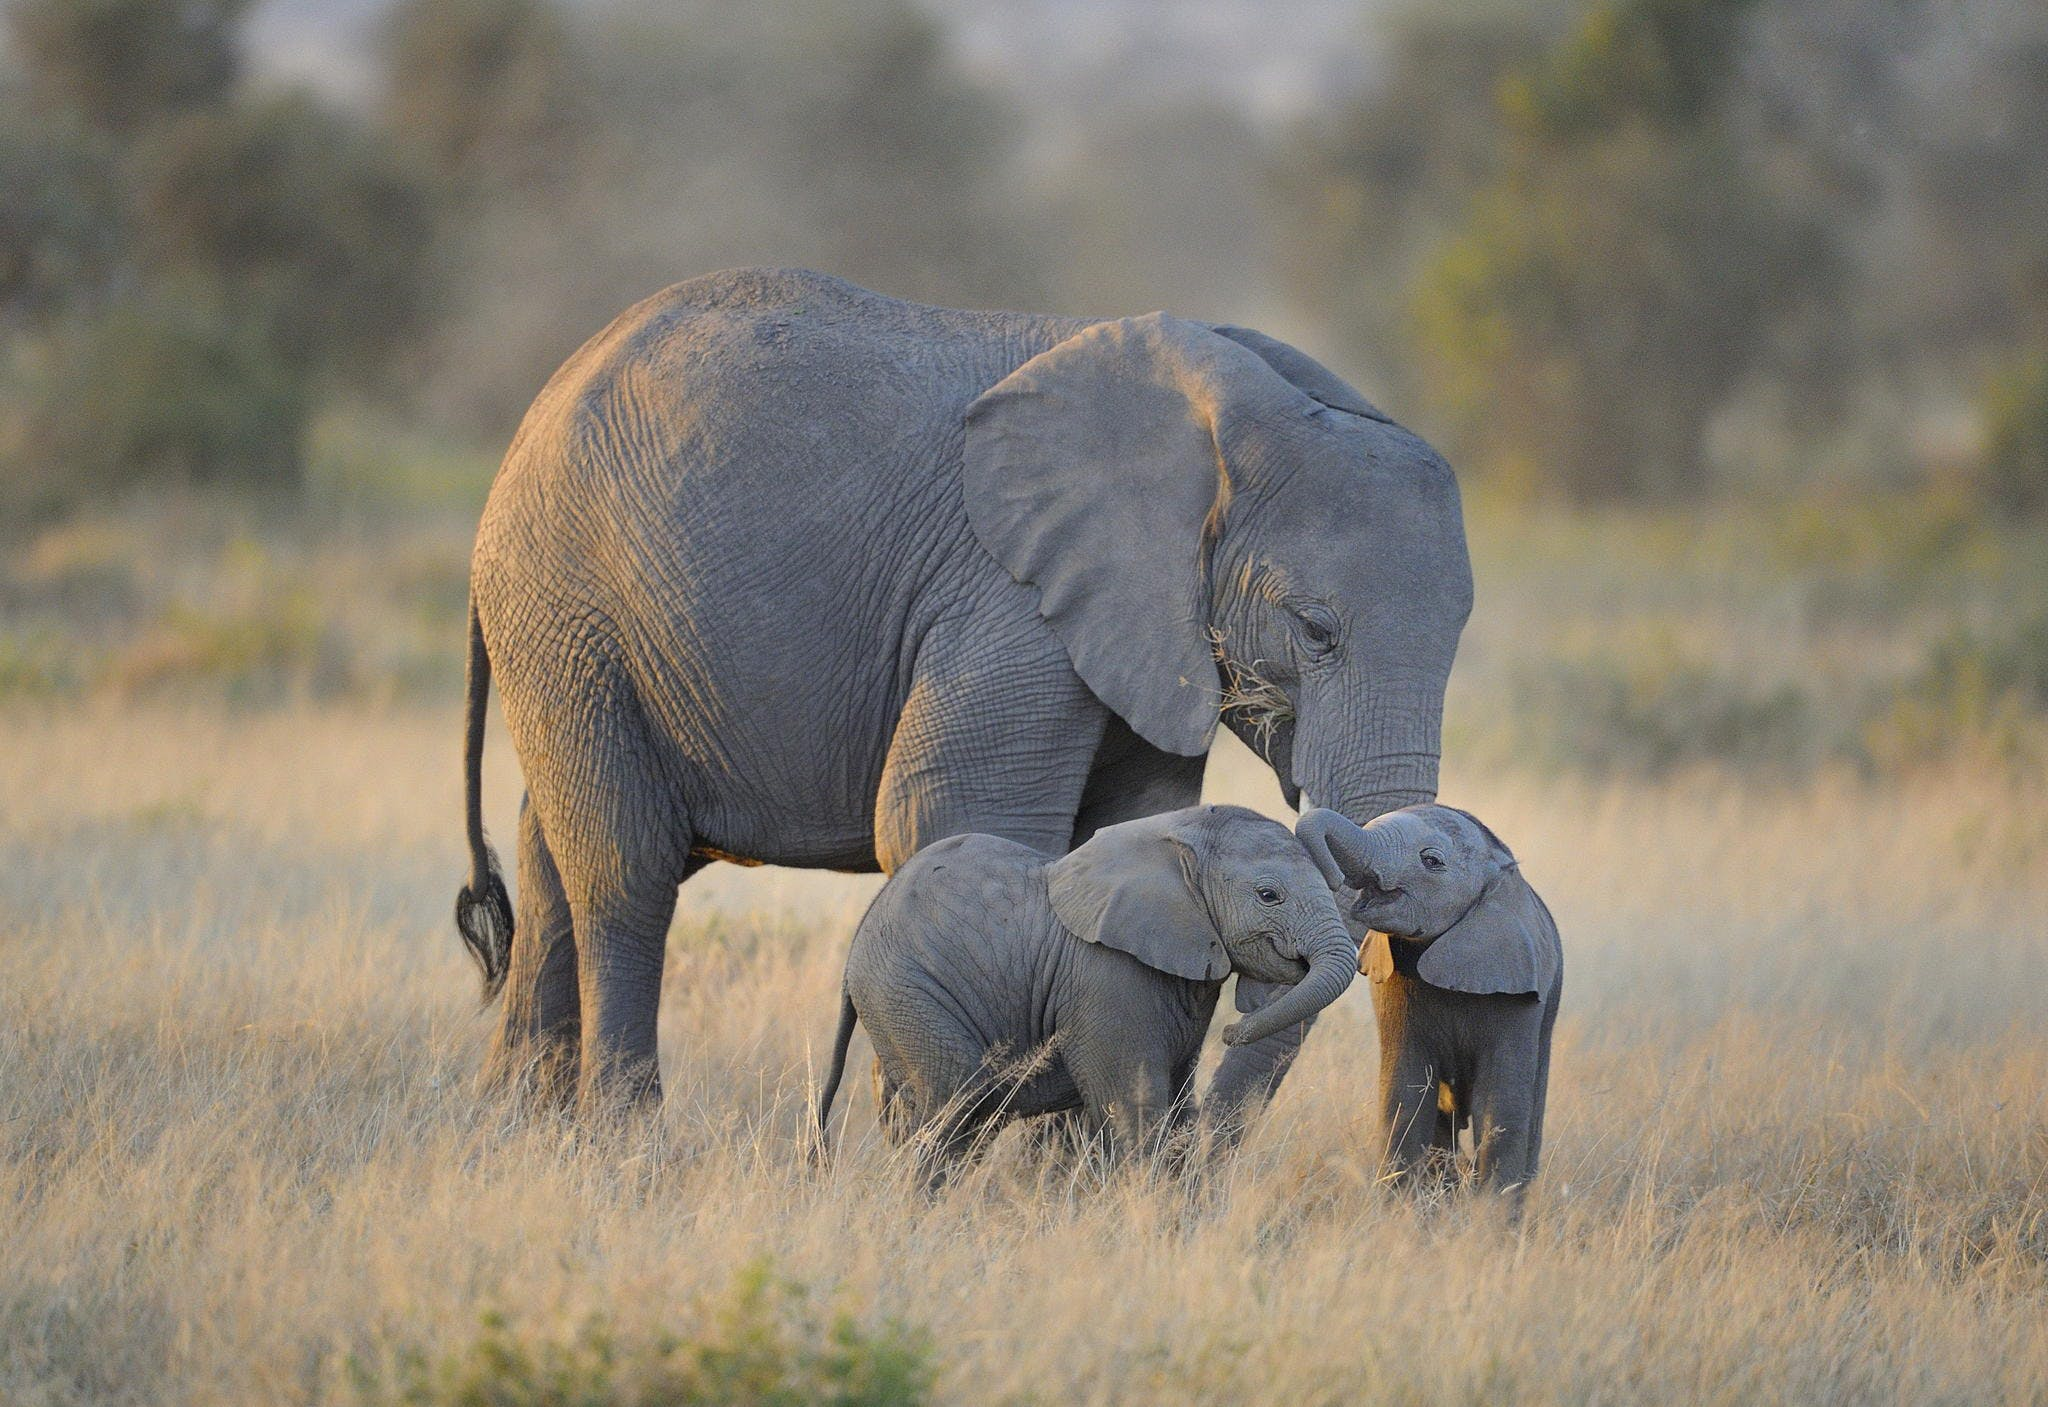 5 endangered species that have had some good news